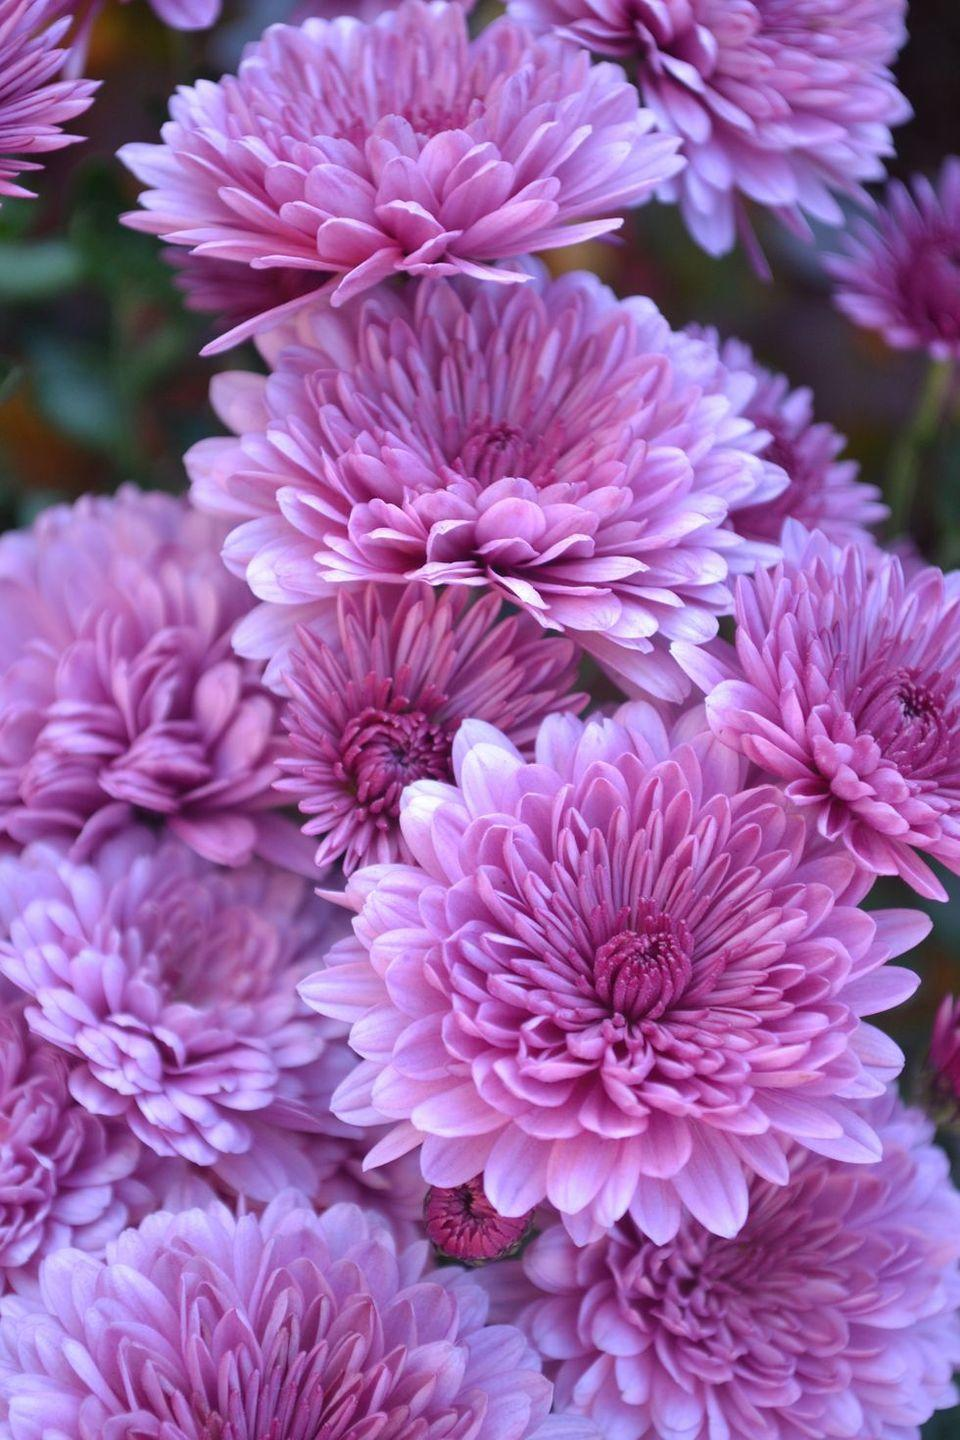 "<p>It may be tricky to spell, but the <a href=""https://www.goodhousekeeping.com/home/gardening/a20705668/growing-mums/"" rel=""nofollow noopener"" target=""_blank"" data-ylk=""slk:chrysanthemum"" class=""link rapid-noclick-resp"">chrysanthemum</a> has a simple message: honesty. They also look lovely as part of a fall bouquet and because they can withstand cool temperatures, often appear in autumn landscaping. </p>"